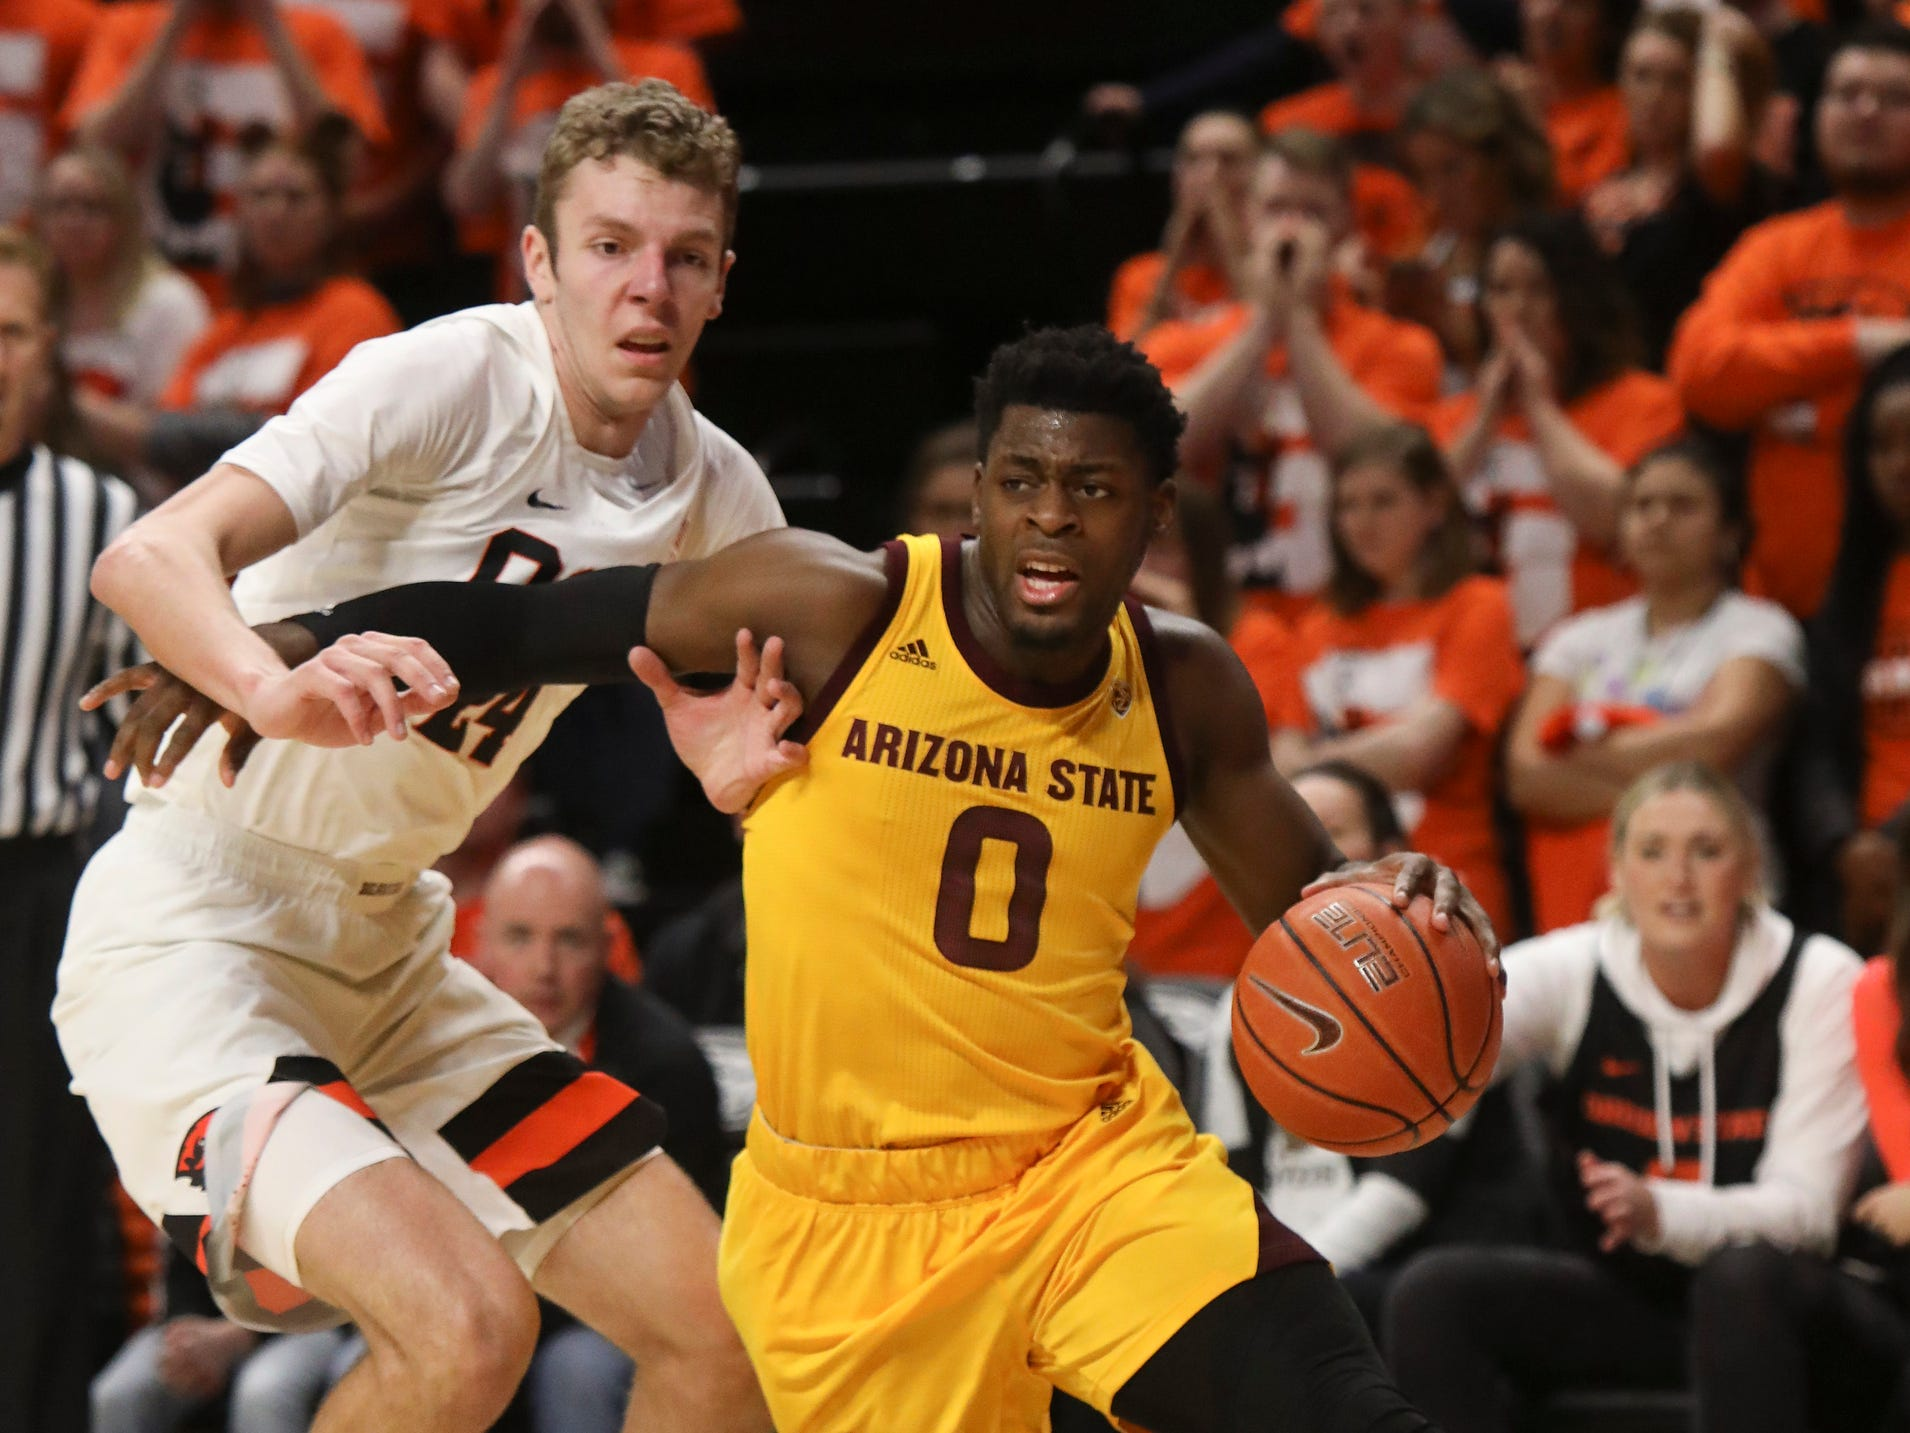 Arizona State's Luguentz Dort (0) drives to the basket, past Oregon State's Kylor Kelley (24) during the first half of an NCAA college basketball game in Corvallis, Ore., Sunday, March 3, 2019.